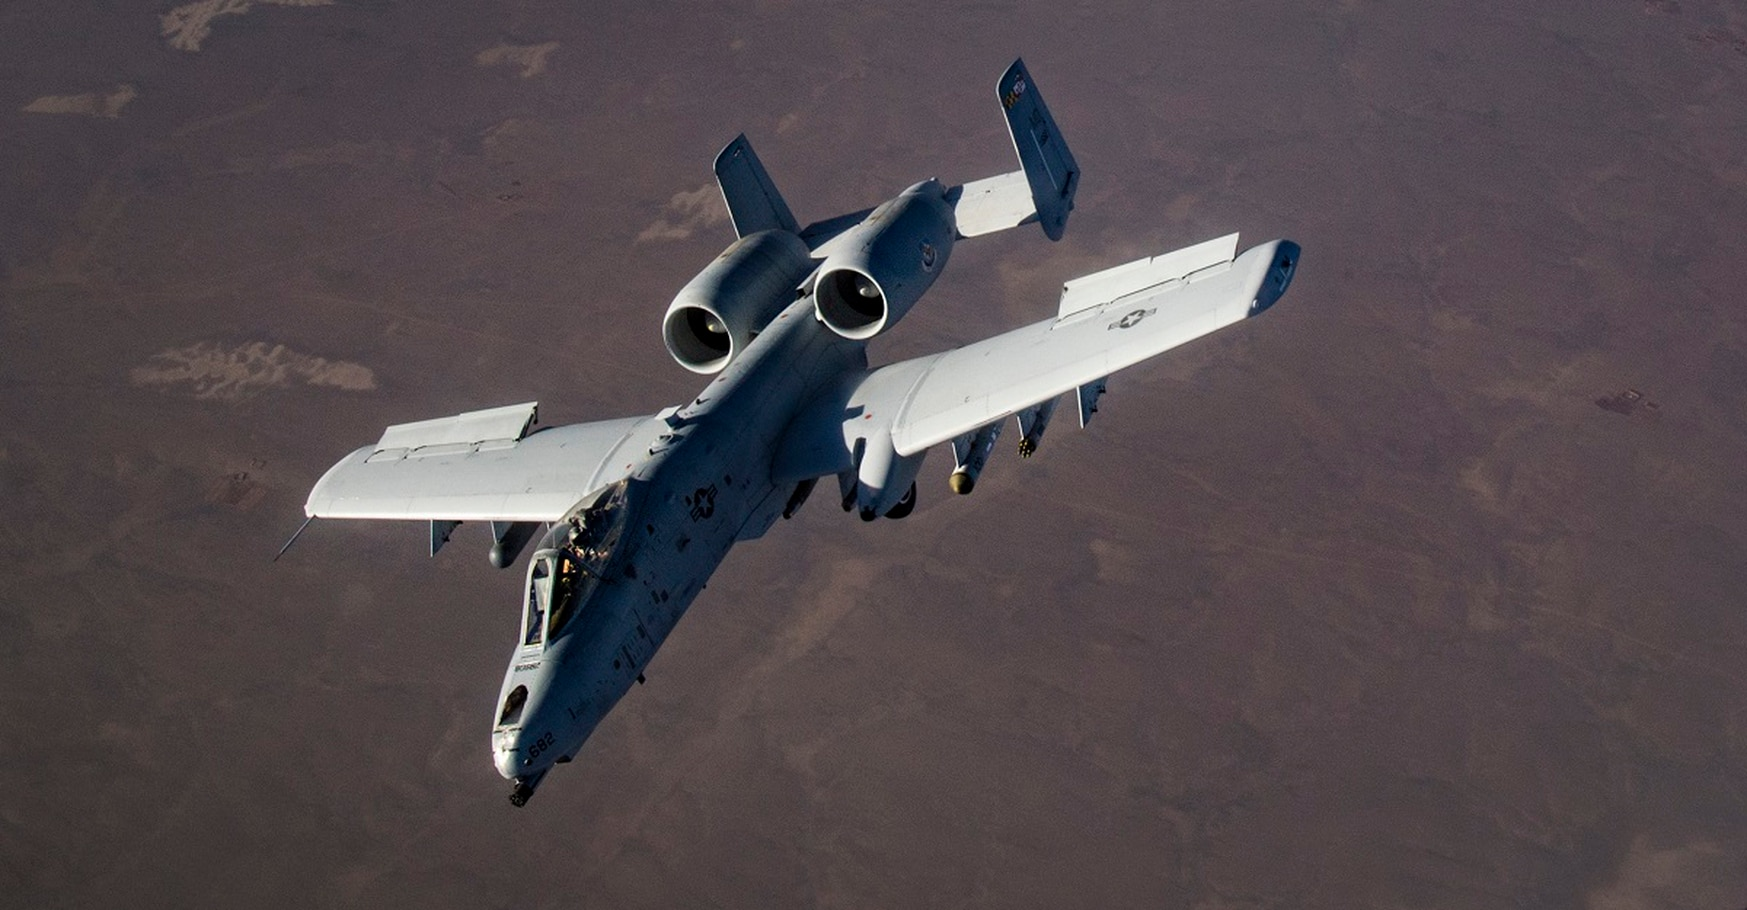 An A-10 Thunderbolt II flies over Afghanistan Jan. 21. The high pace of operations there is likely to continue even as peace talks continue. (Staff Sgt. Clayton Cupit/Air Force)